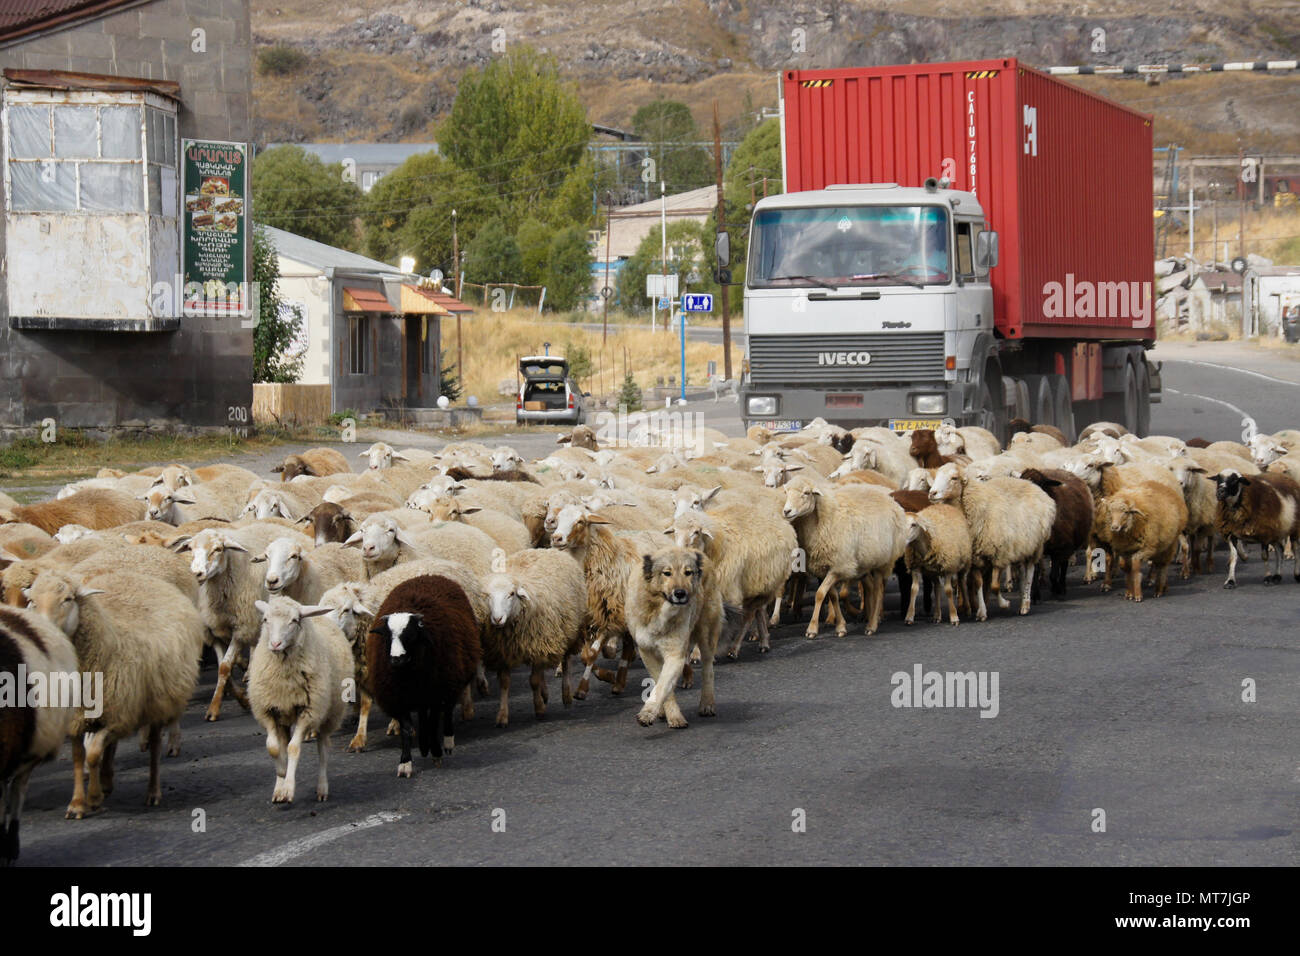 SISIAN, ARMENIA, SEPTEMBER 27, 2017. A flock of sheep blocks traffic as it walks past a local restaurant on the road through town. - Stock Image